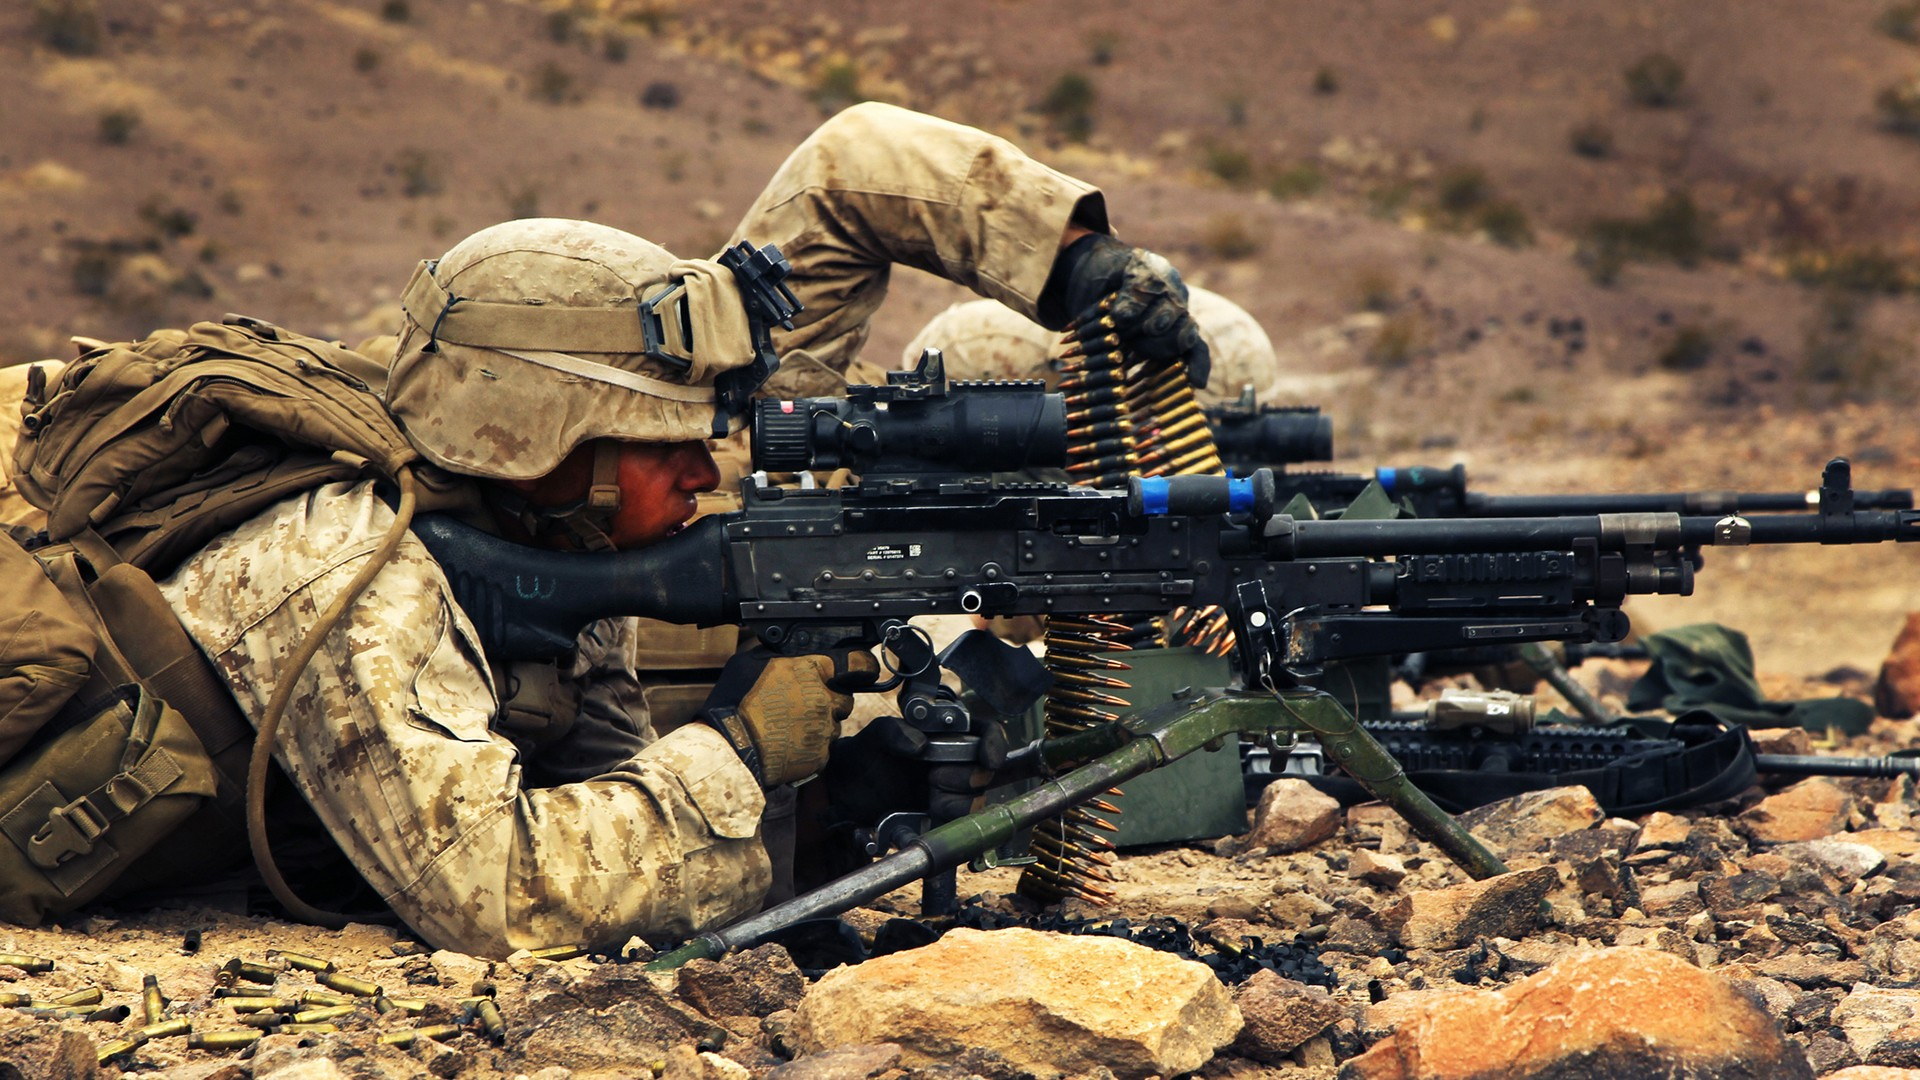 Wallpapers M240 tripod United States Marine Corps 1920x1080